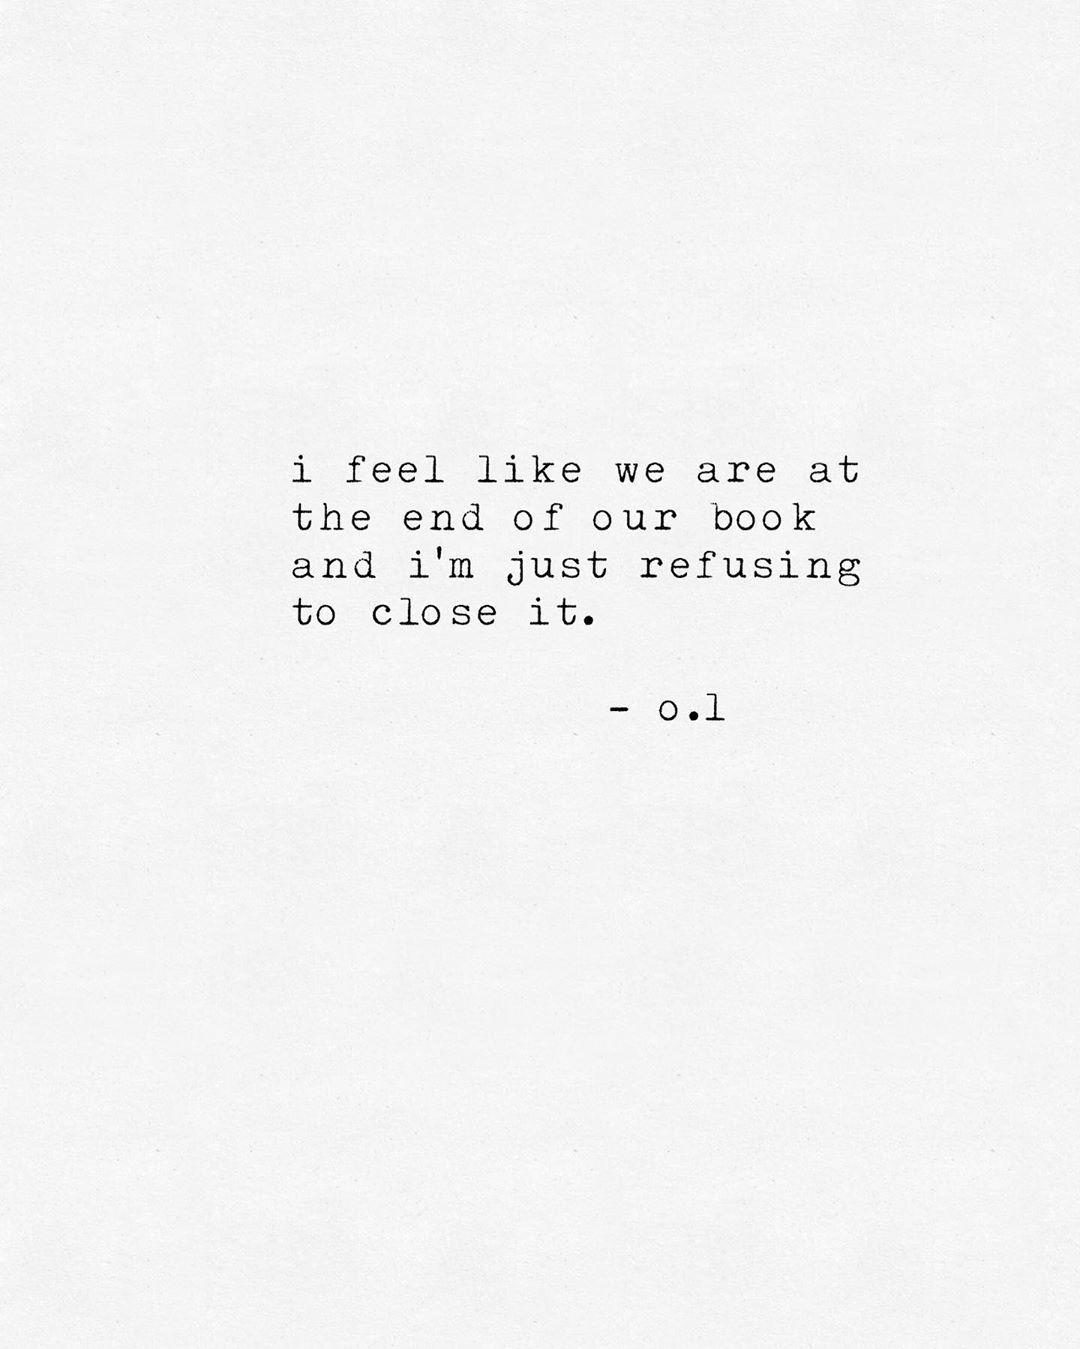 the end is near. - #poetrybyol #quotes #love #lovequotes #deepwords #wordslover #poetry #deeppoetry #poems #writing #thingstolove #poetry…